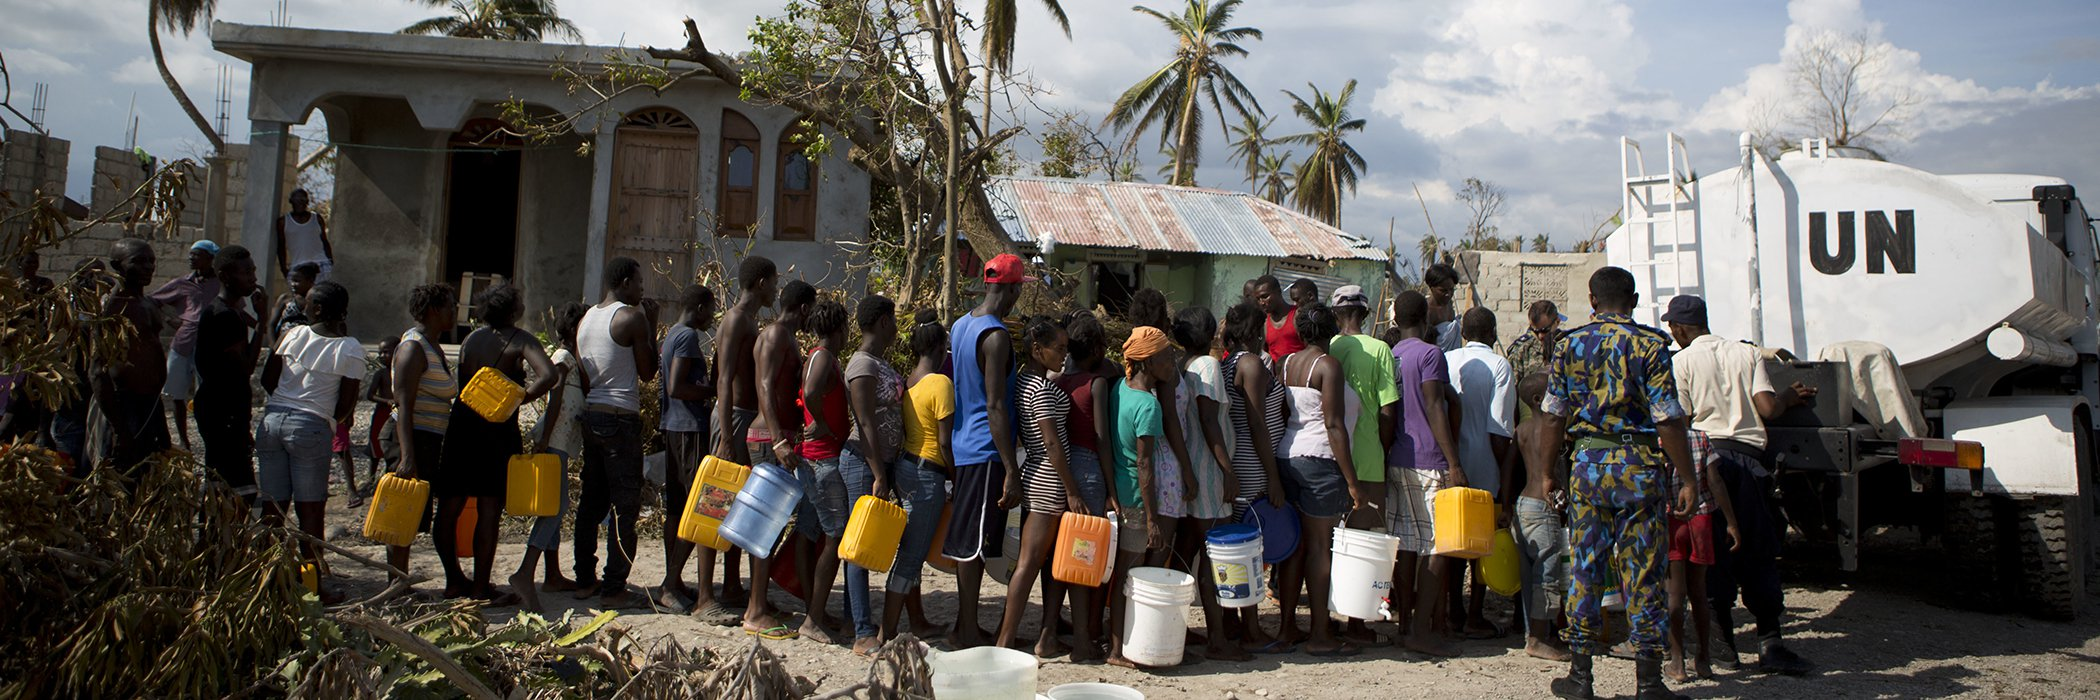 Haiti-Immigration-Water-Scaricty.jpg